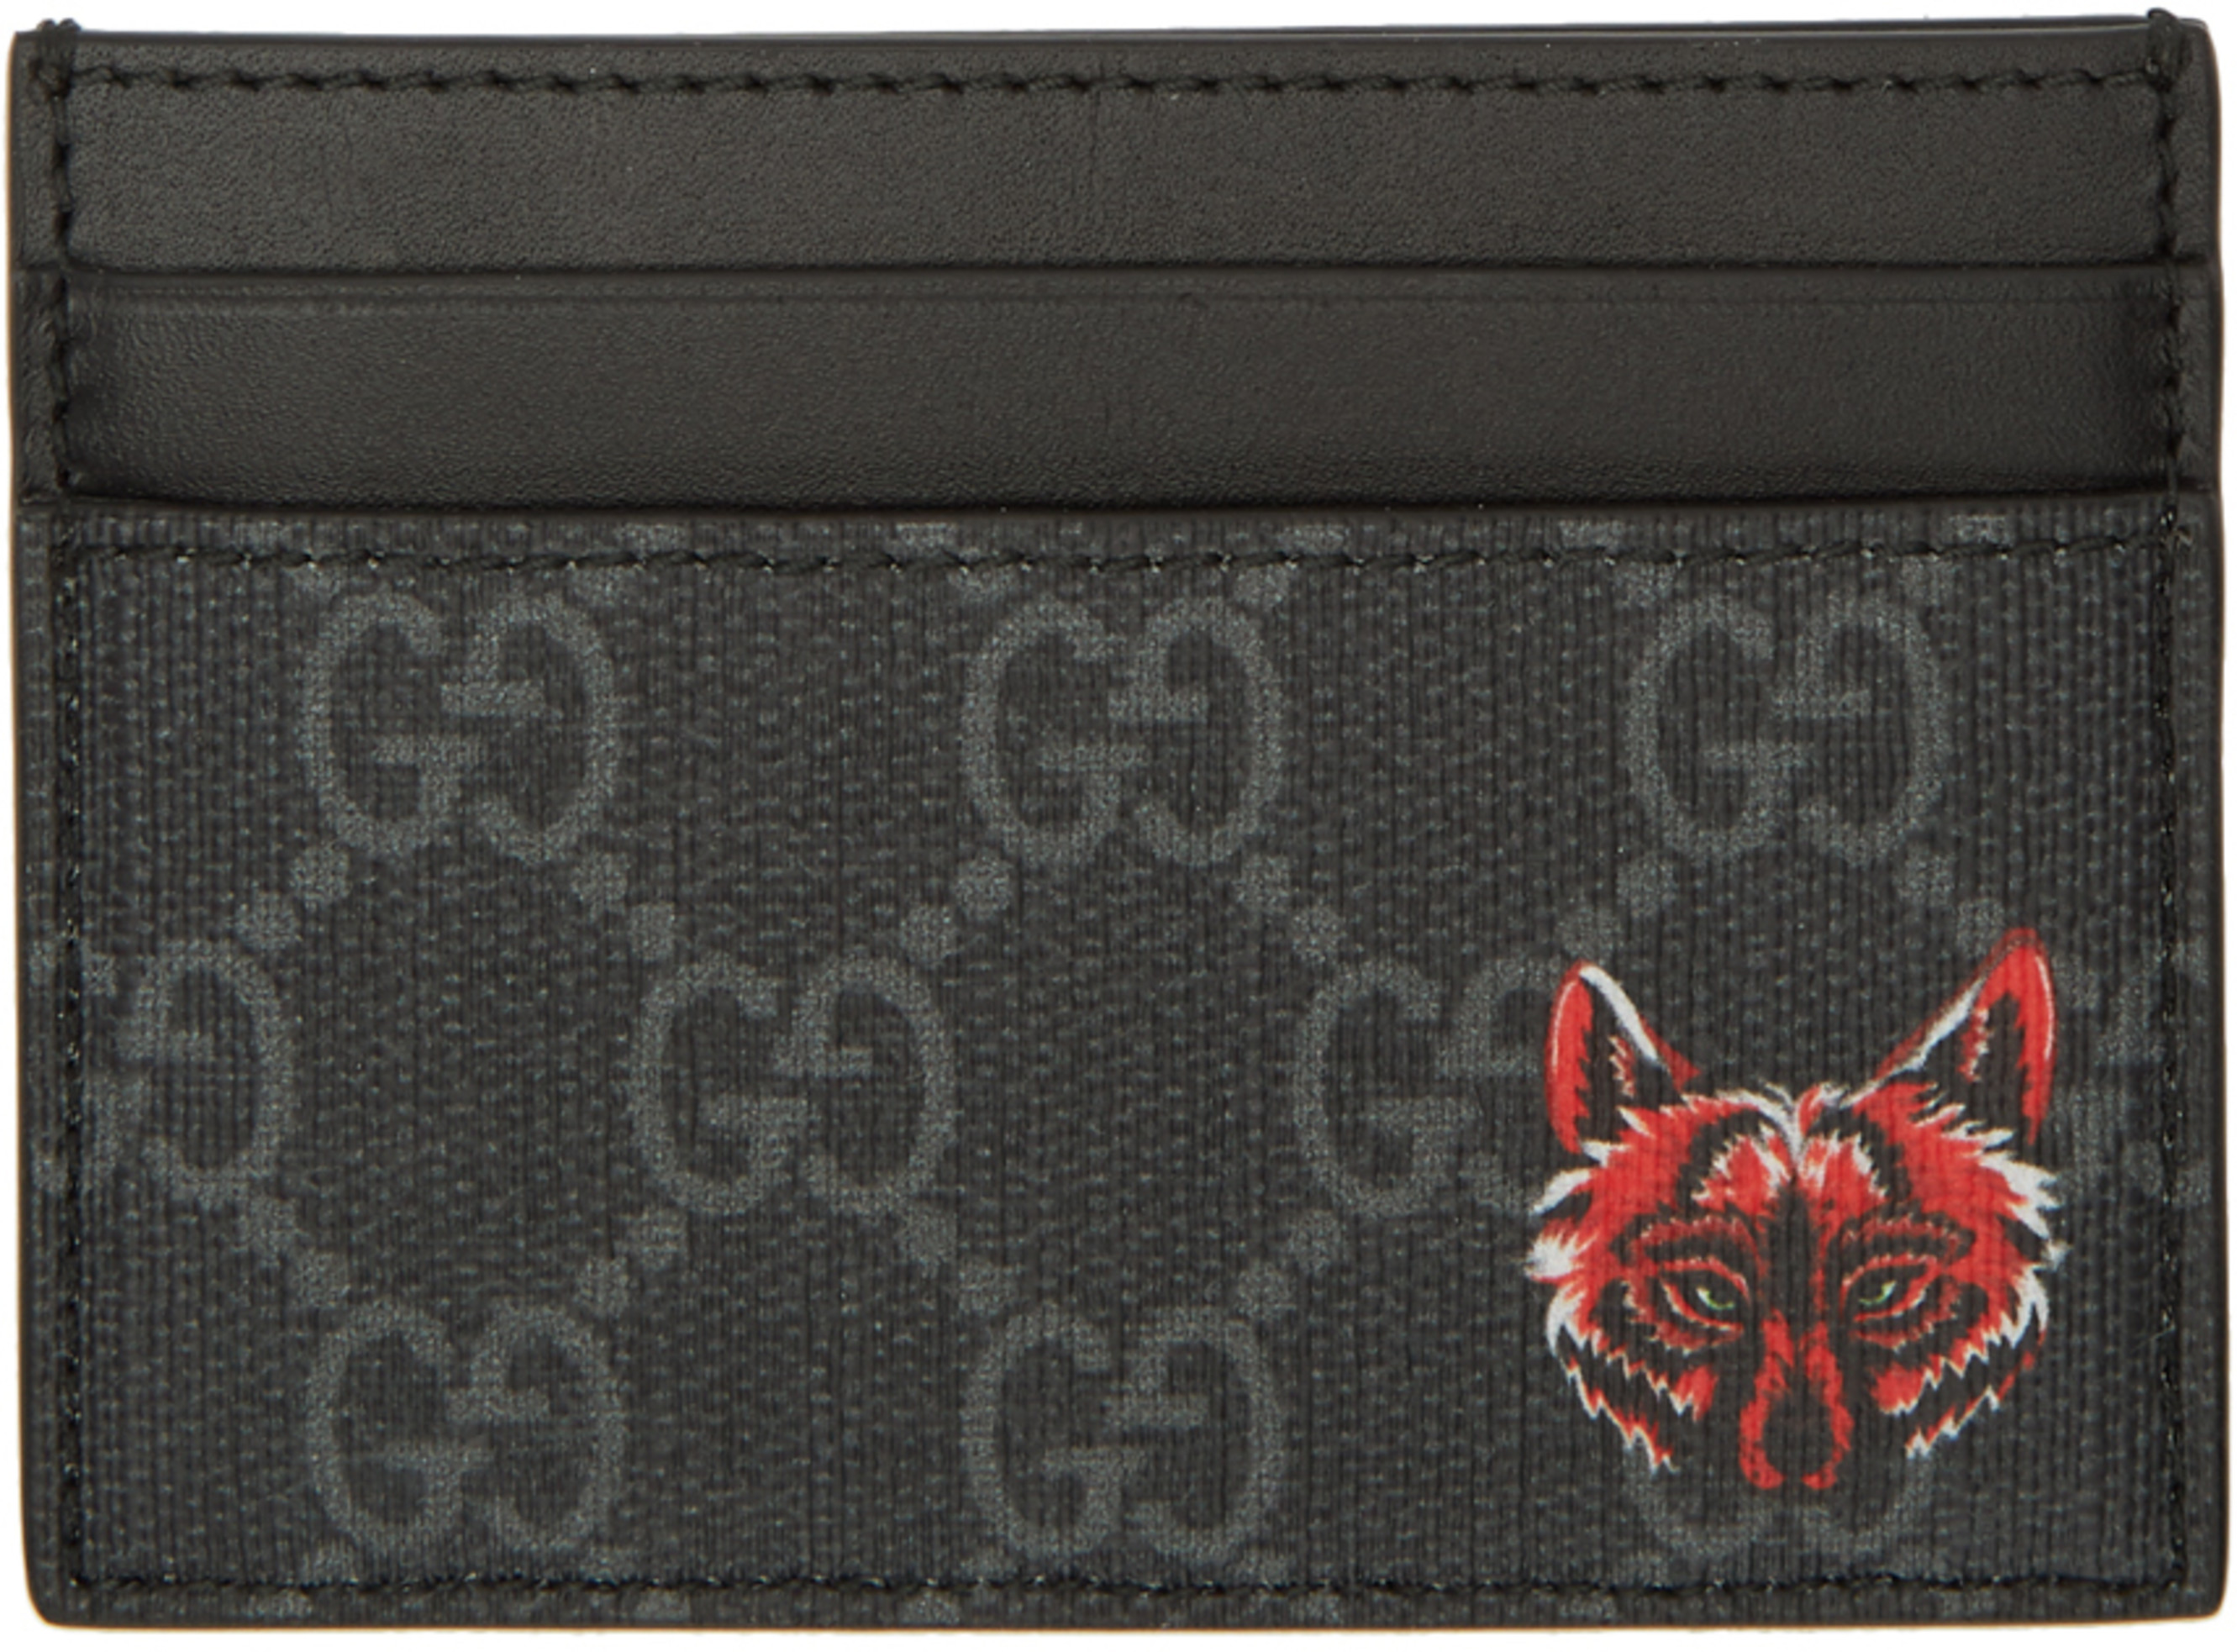 be22a9e30f0 Gucci wallets   card holders for Men